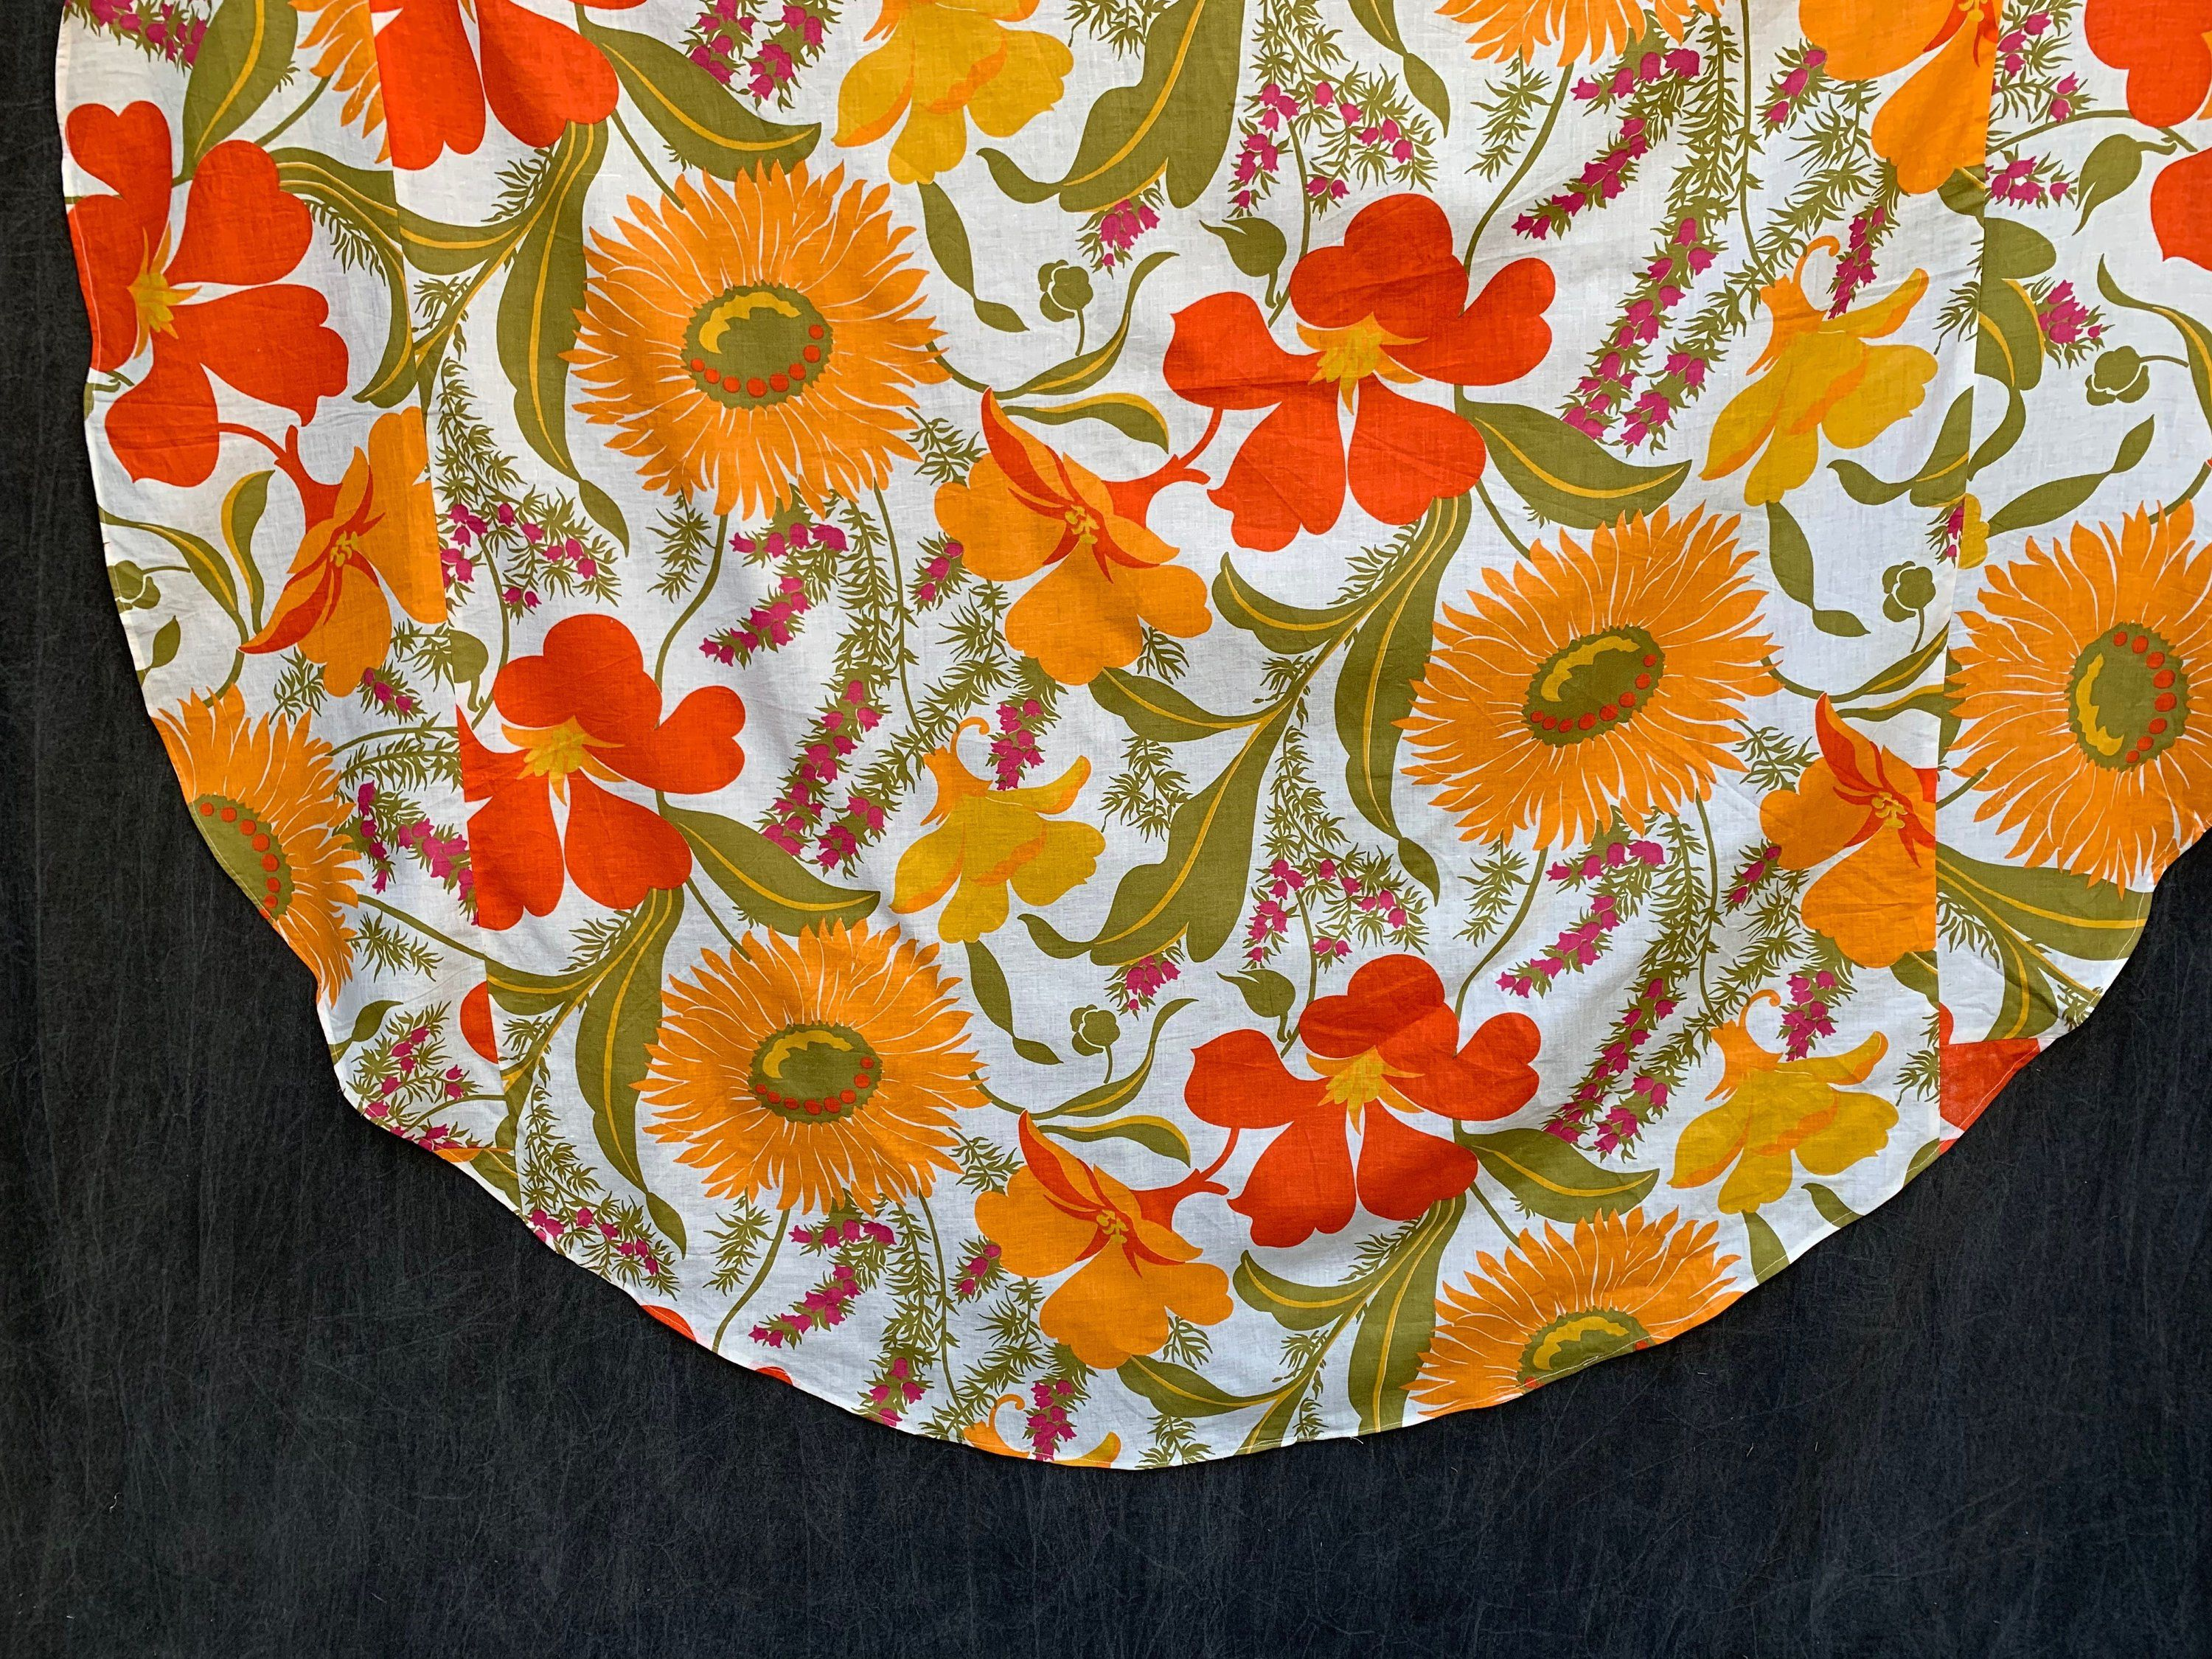 60 S Tablecloth Circular Cotton Mixed Flowers Round Table Cloth 65